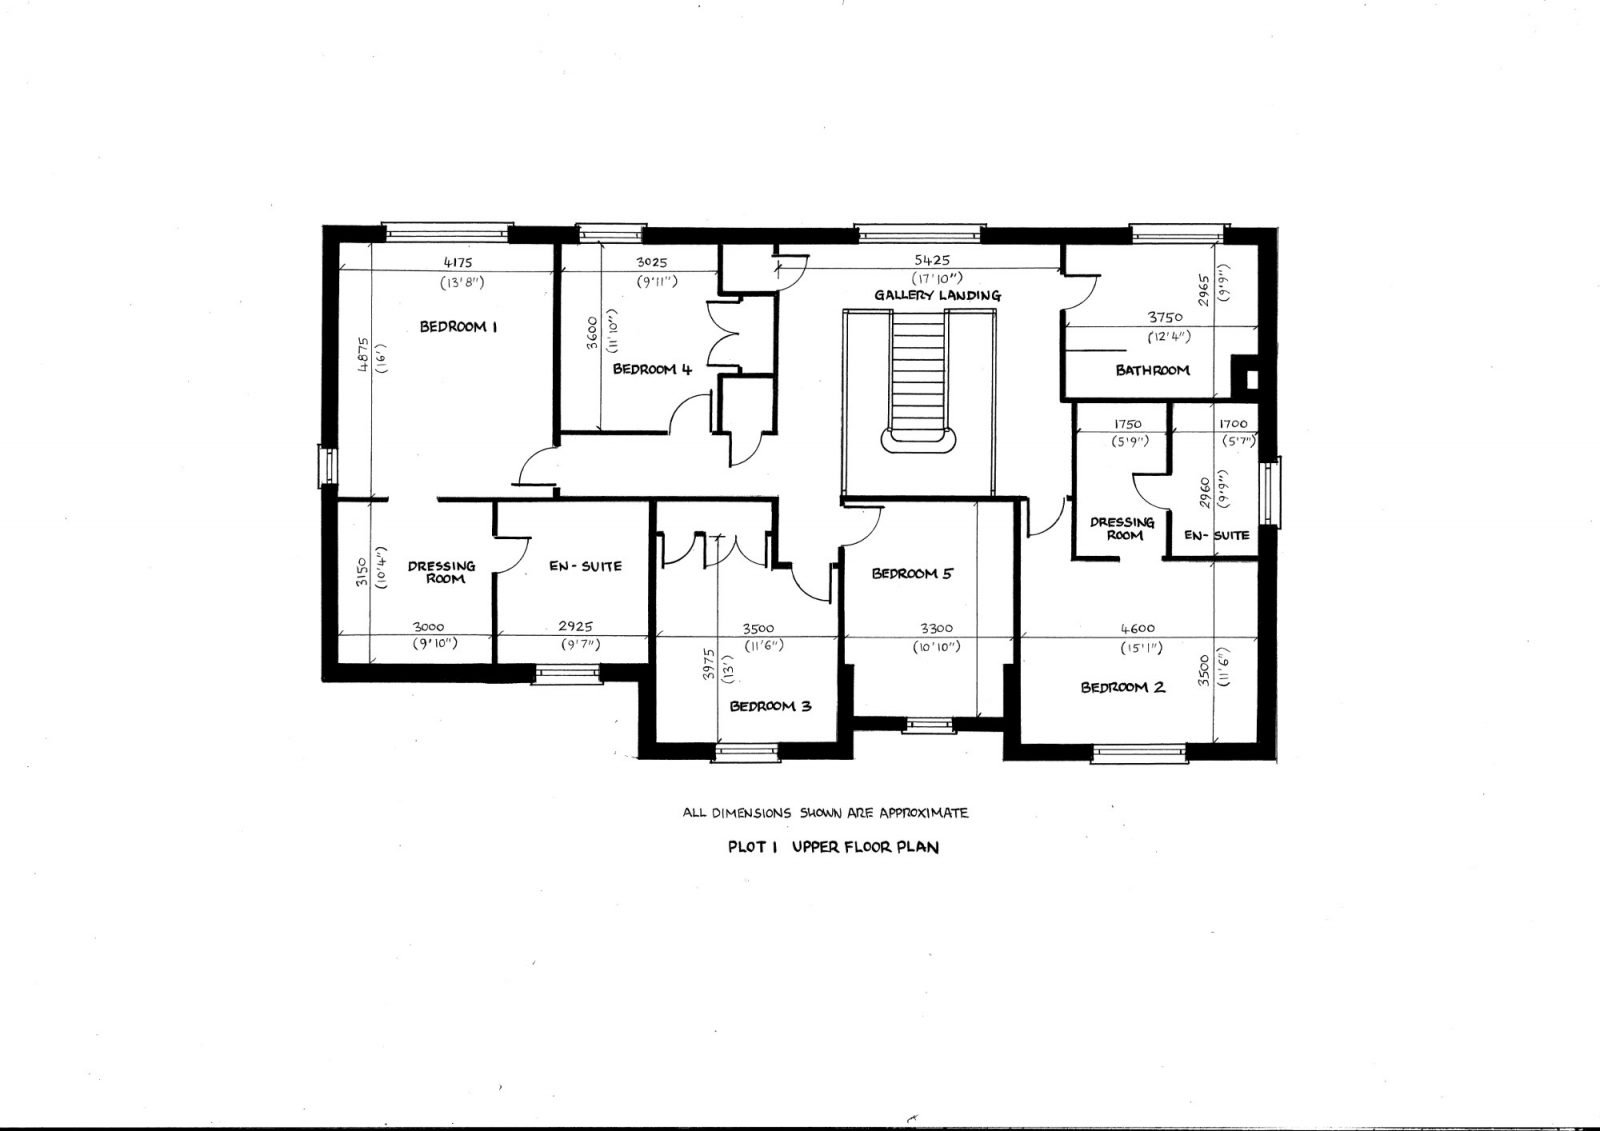 plot-1-rdc-upper-floor-plan